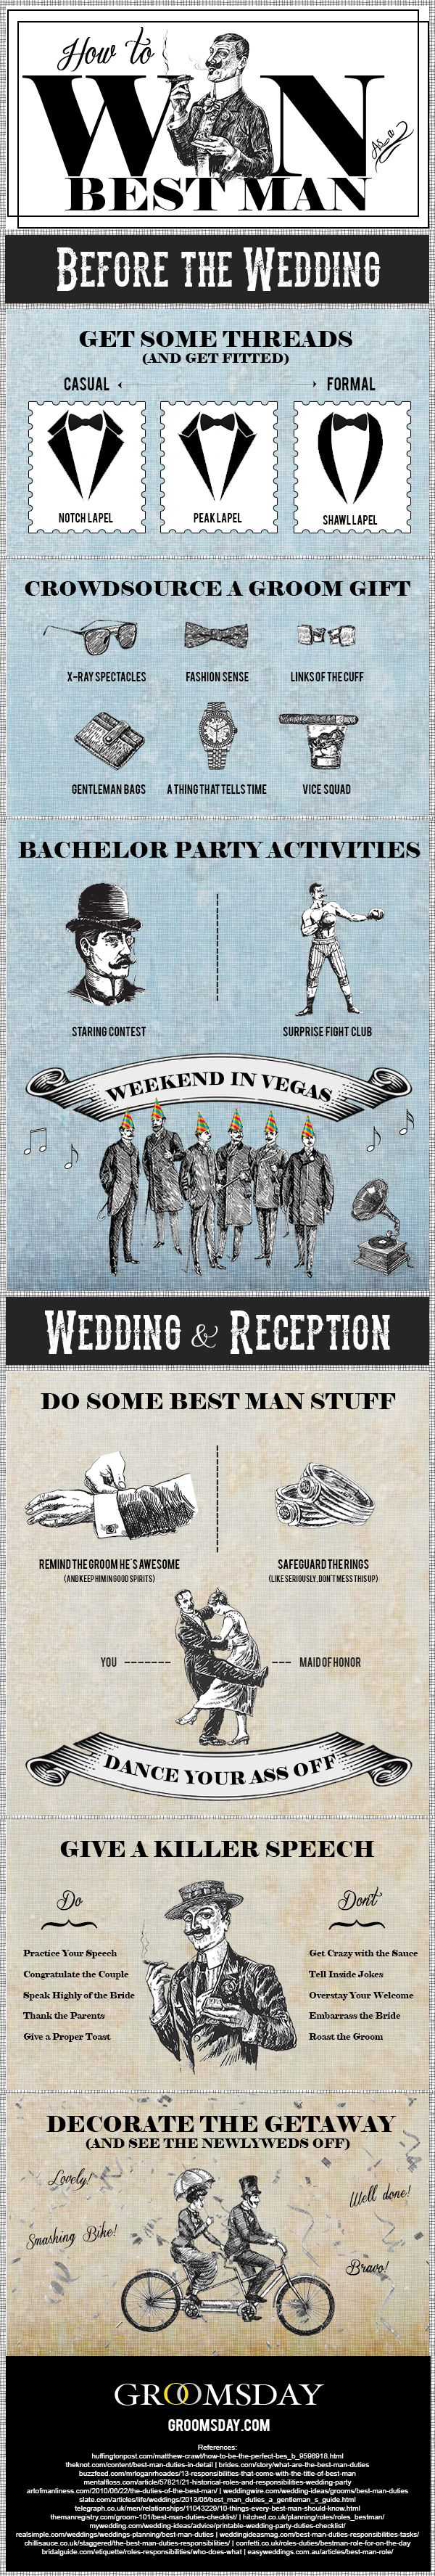 """Share this with your best man! """"How to Win as a Best Man"""" by Groomsday.com. Being the groom's best man ain't rocket science but this infographic will help illustrate common best man duties and the responsibilities that come with the honor of being the best man such as giving a best man speech, bachelor party ideas, gift ideas and being a gent at the wedding. See 'How to Win as a Best Man' with this helpful infographic from Groomsday.com. Share this with your best man!"""